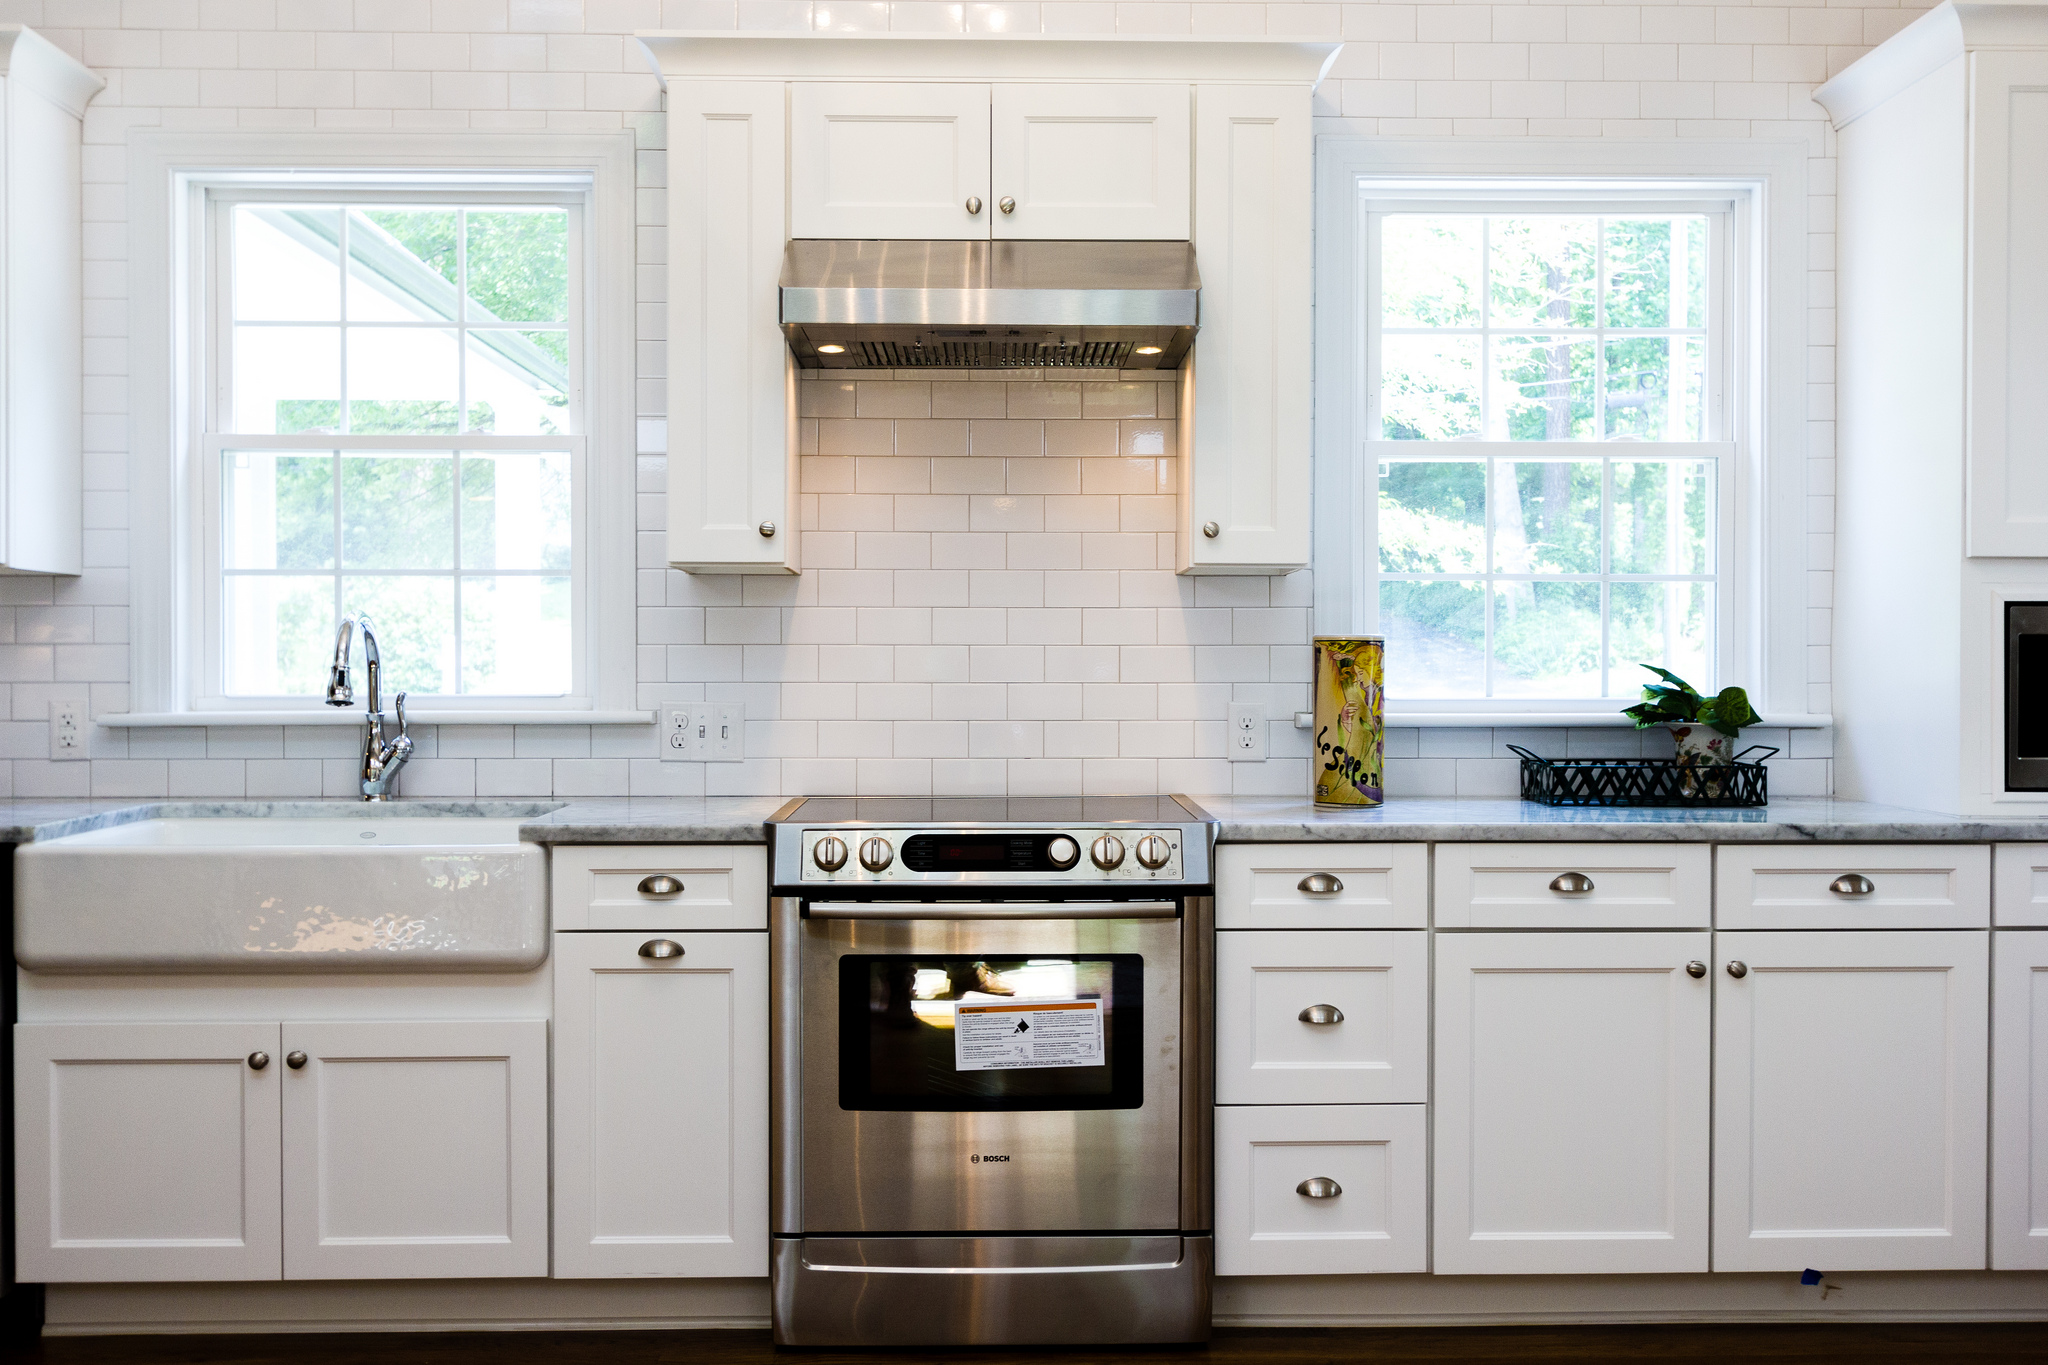 6 renovated kitchen with white subway tile